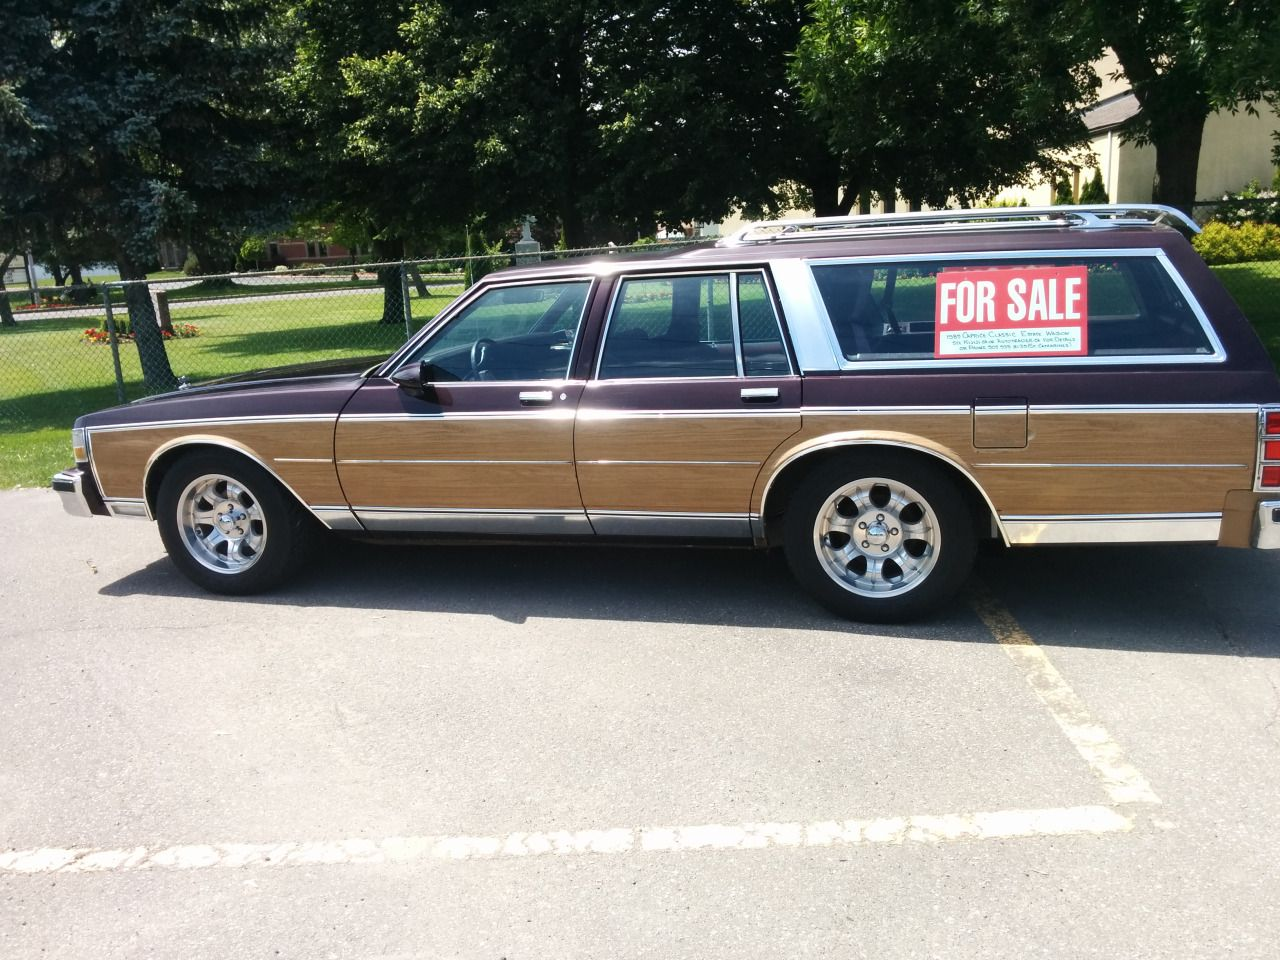 Car Crazy 1989 Caprice Classic Estate | 77-90 Chevy Caprice and ...